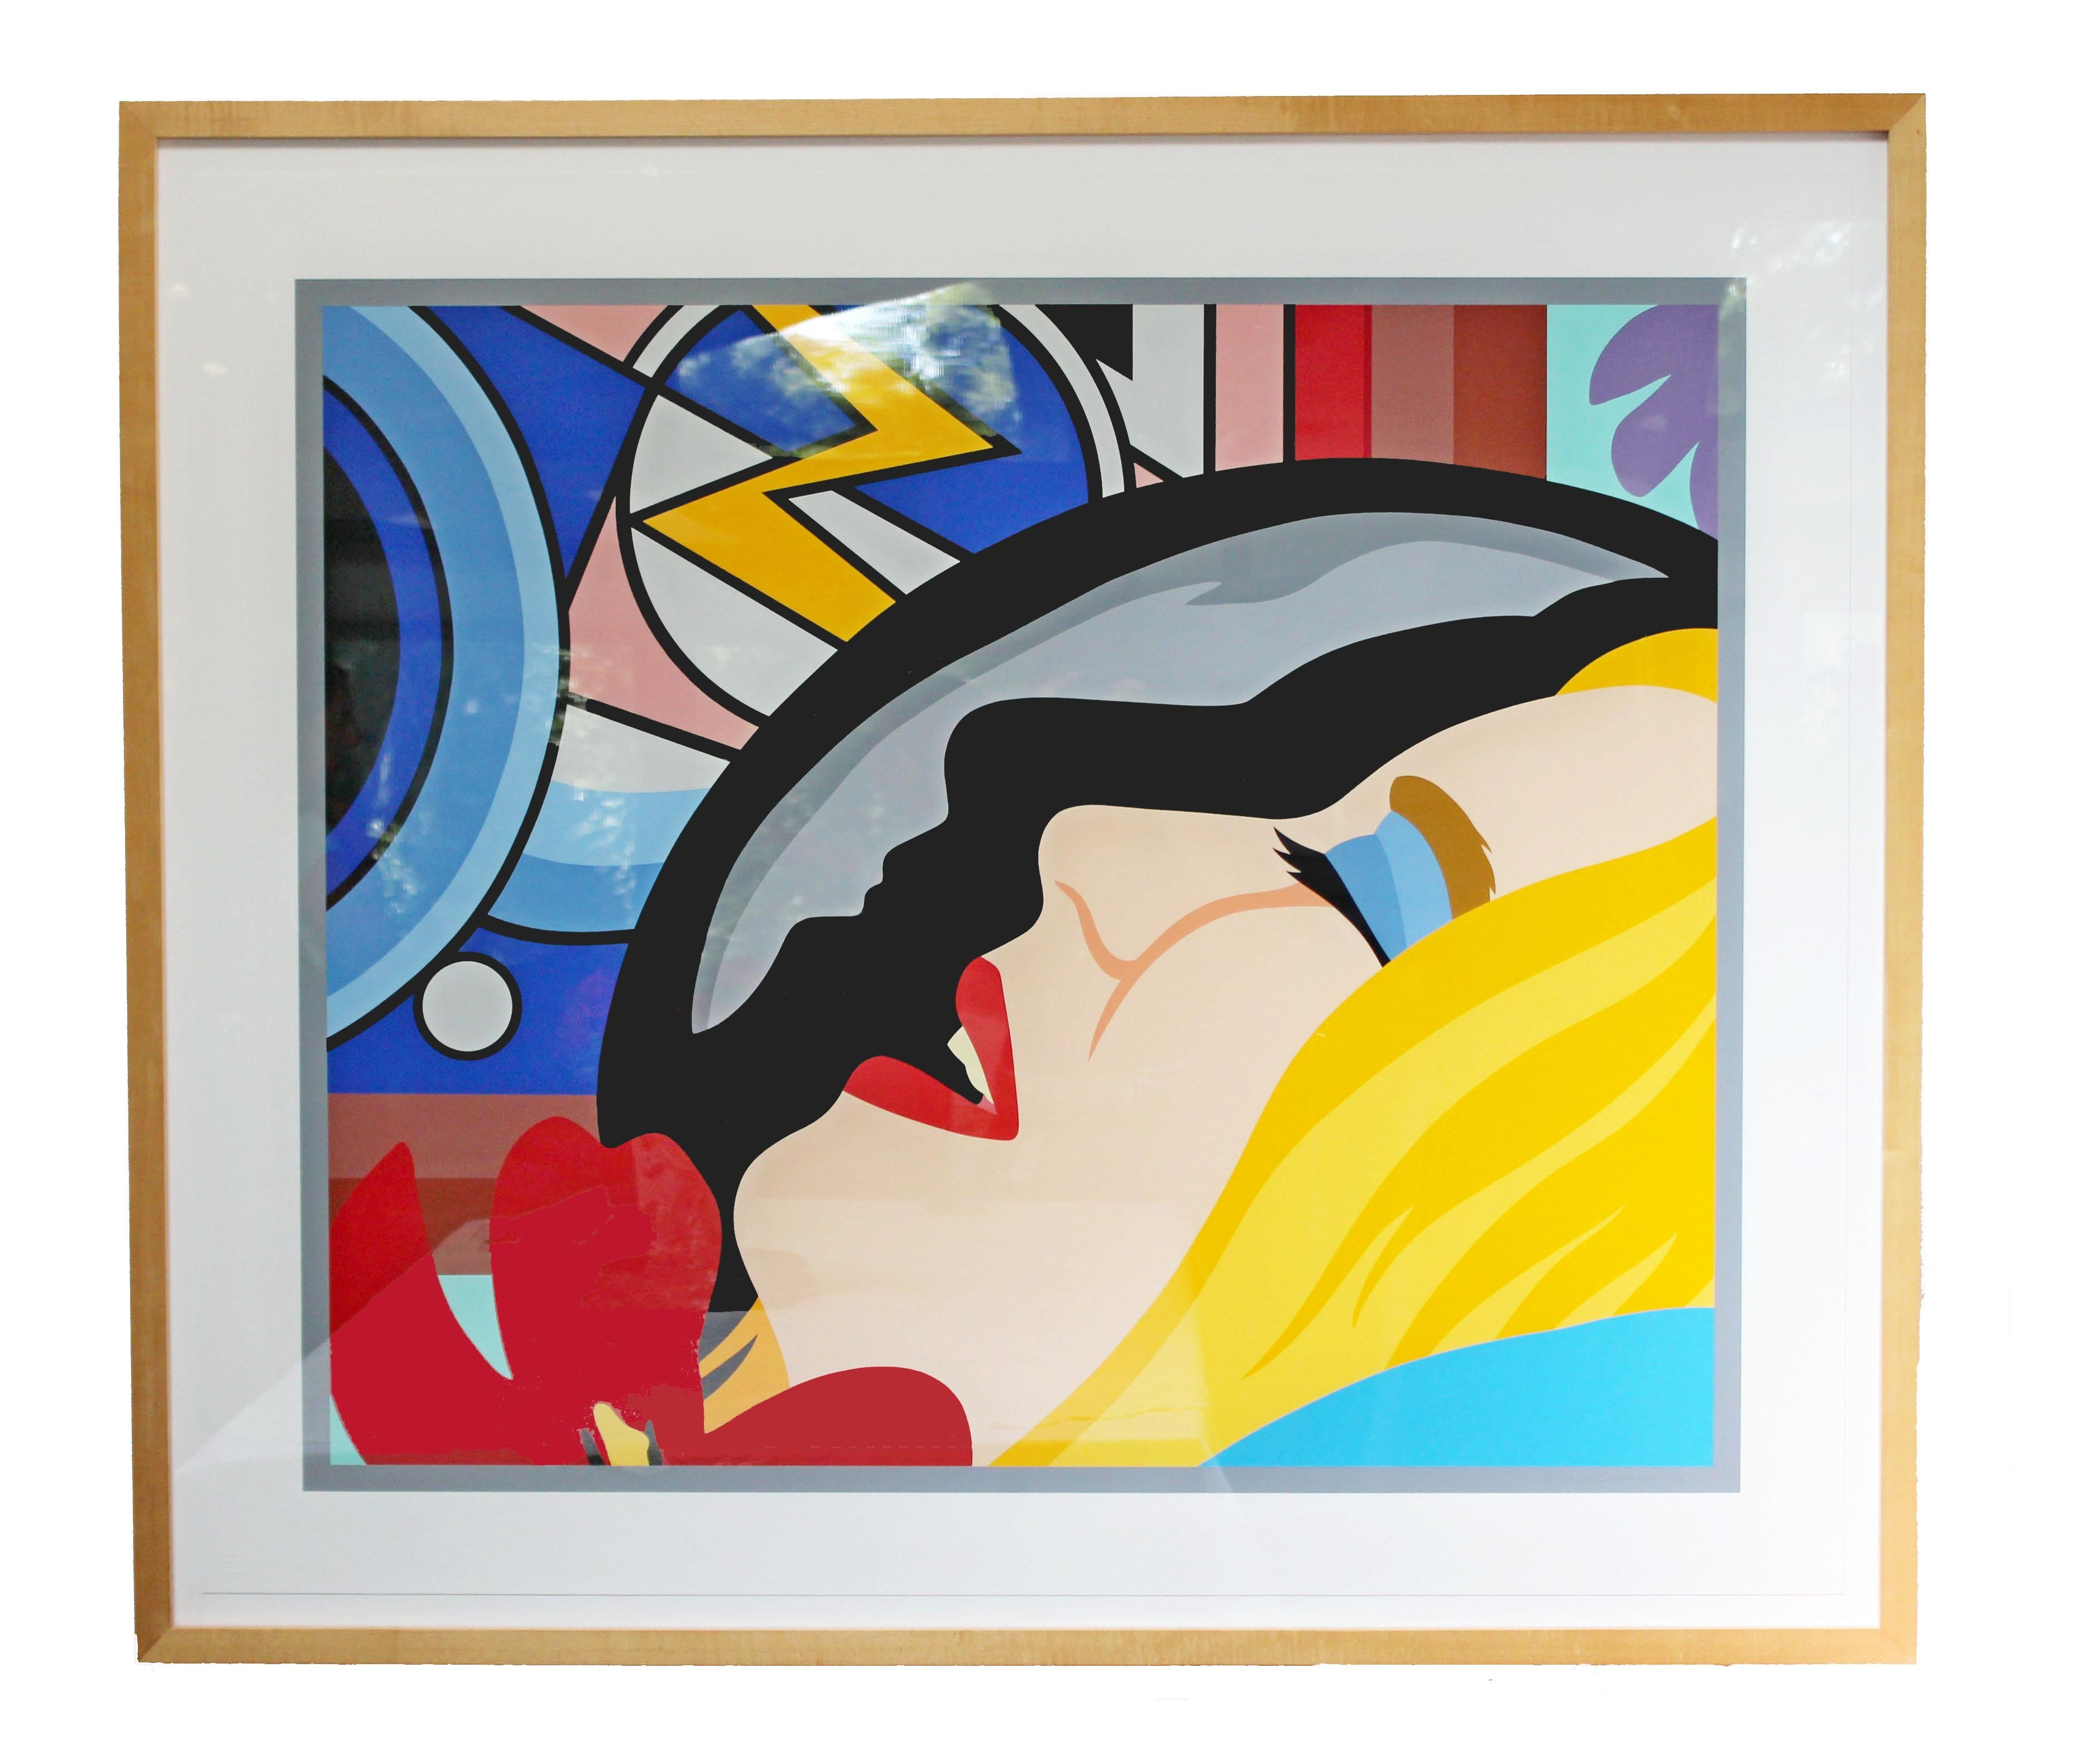 Bedroom Face with Lichtenstein Signed Tom Wesselmann Numbered 5/65, 1997